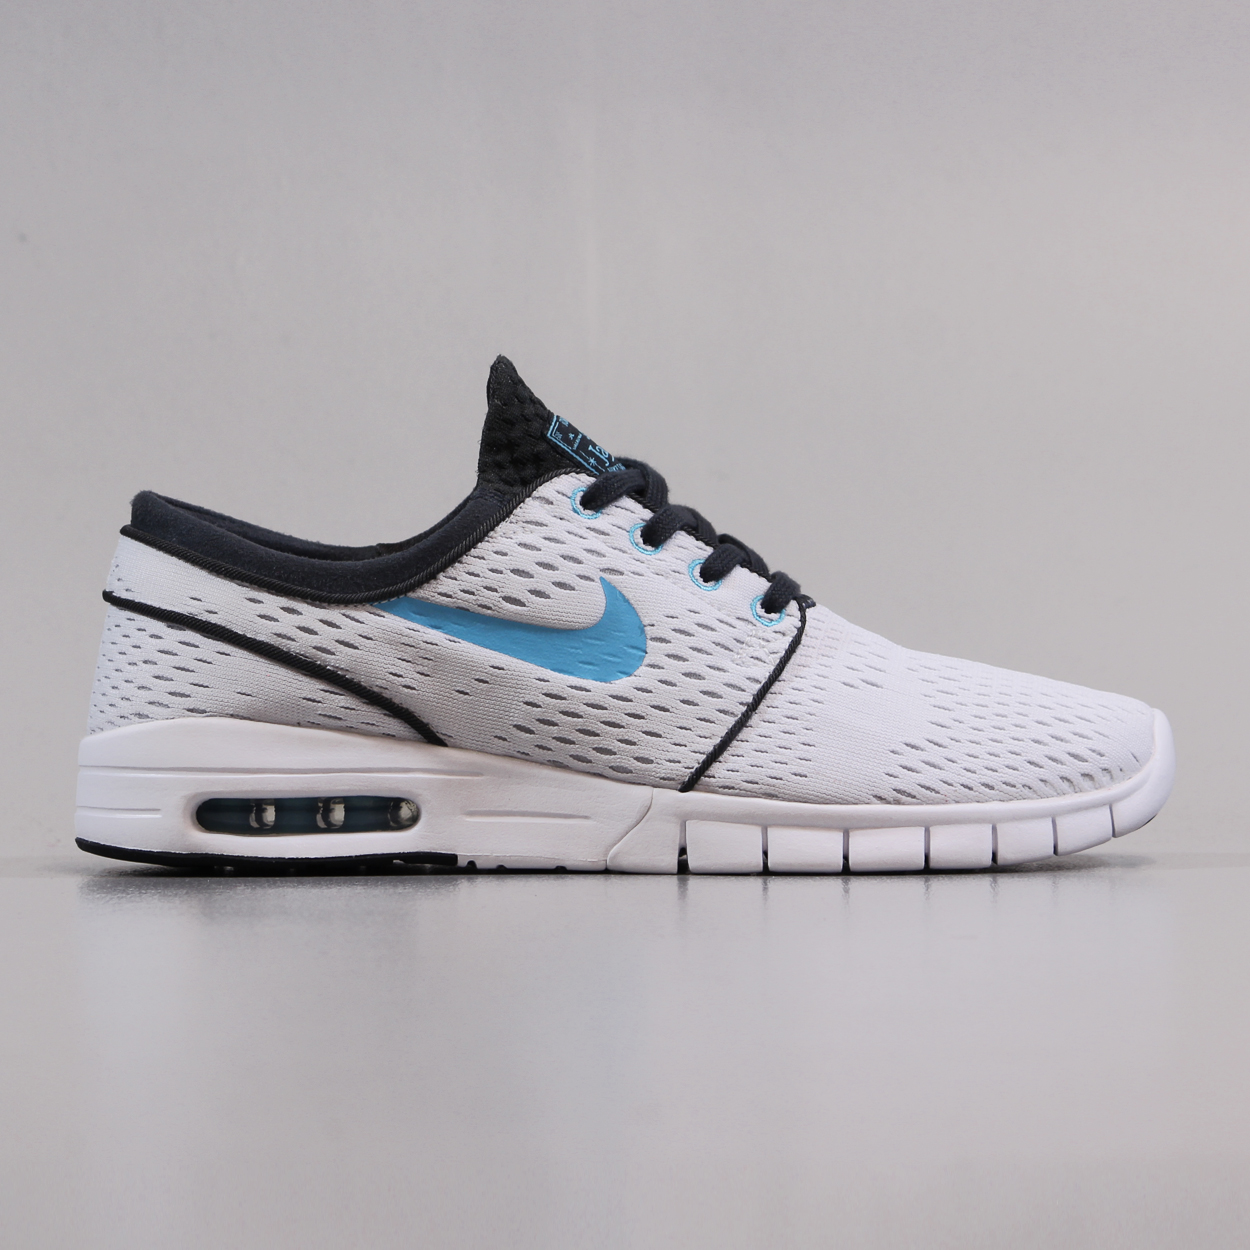 buy popular 253a1 a8a1e Nike SB Stefan Janoski Max Shoes White Clearwater Anthracite Black